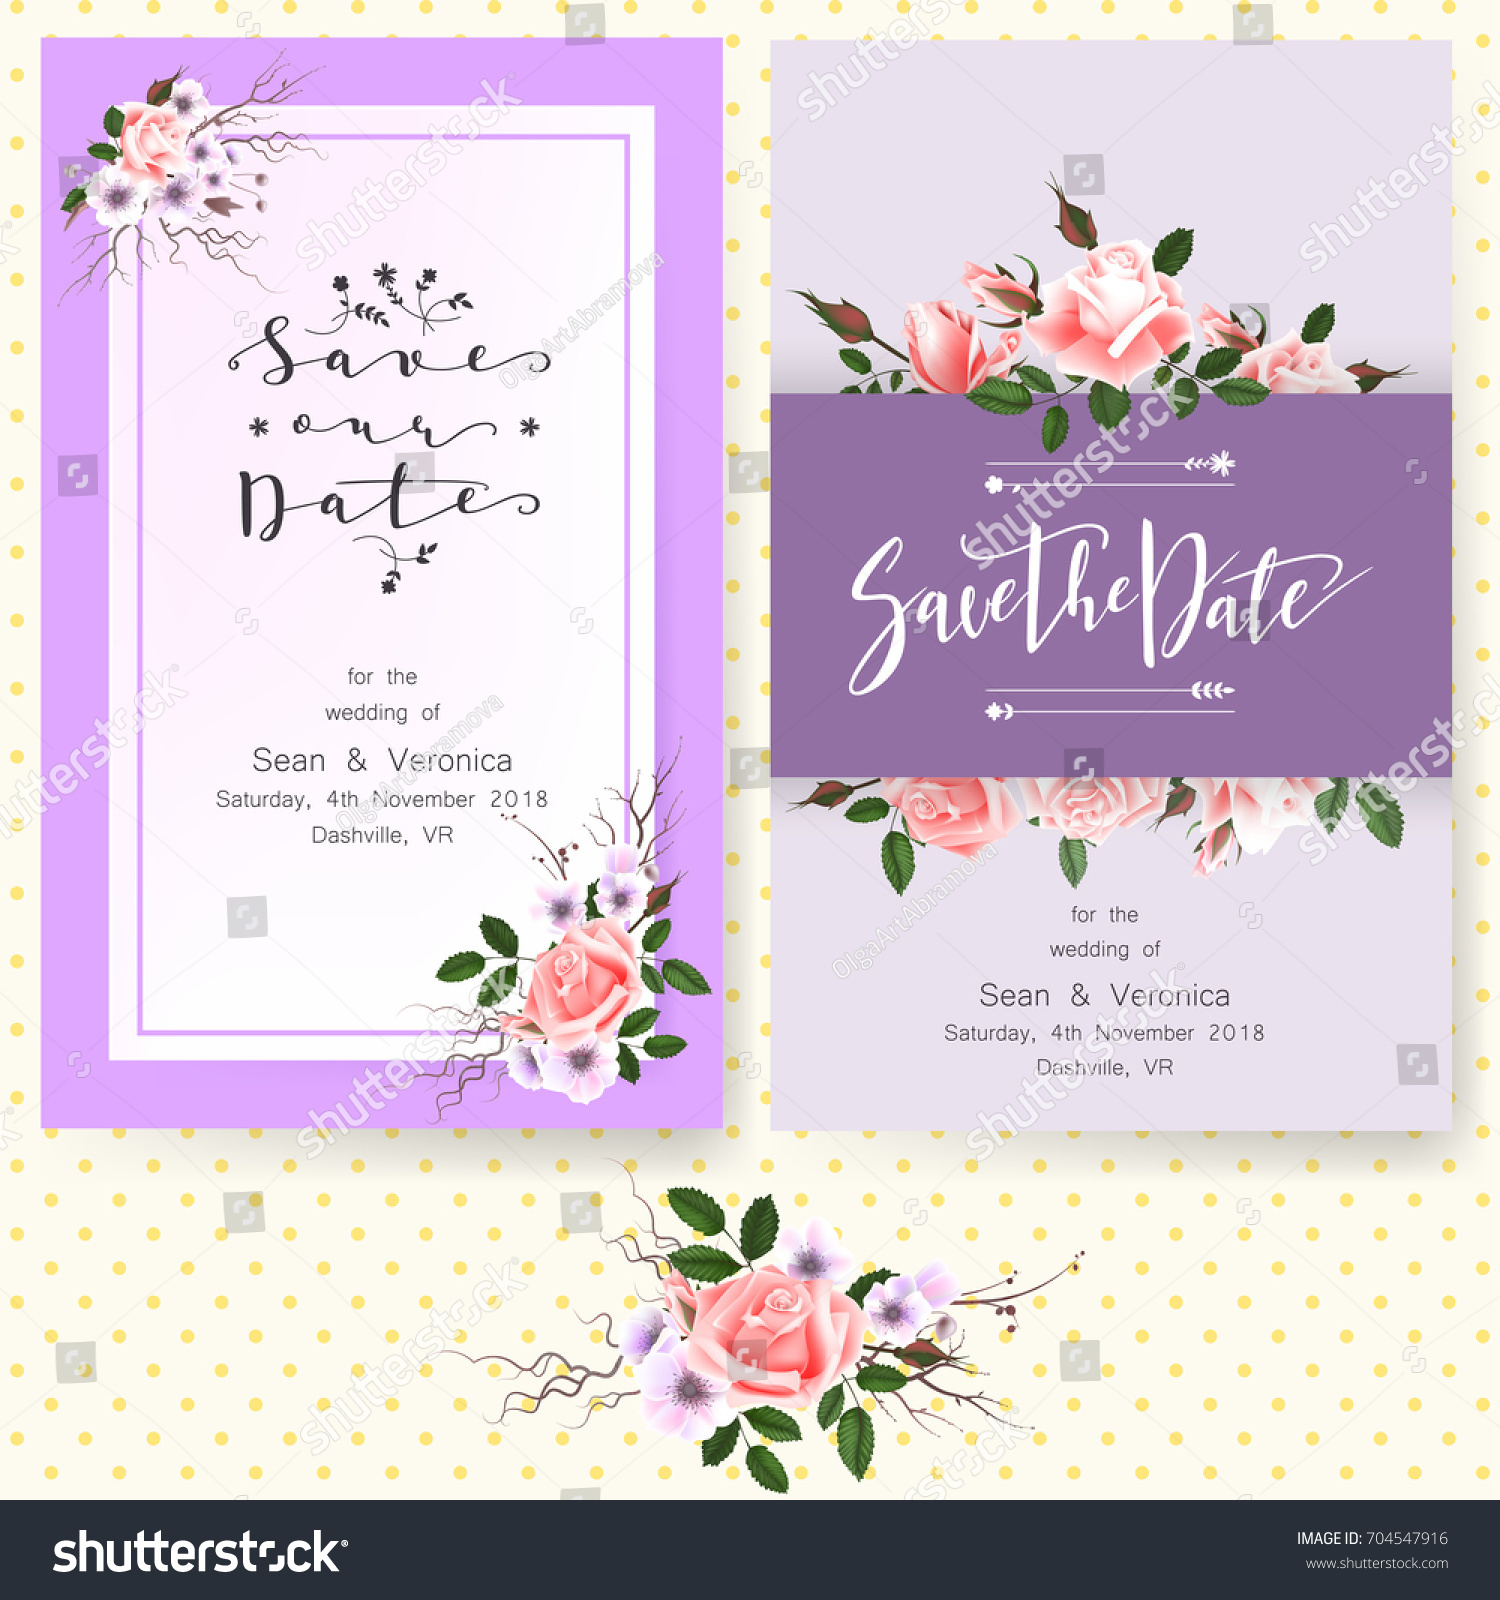 Save Date Card Wedding Invitation Greeting Stock Vector 704547916 ...